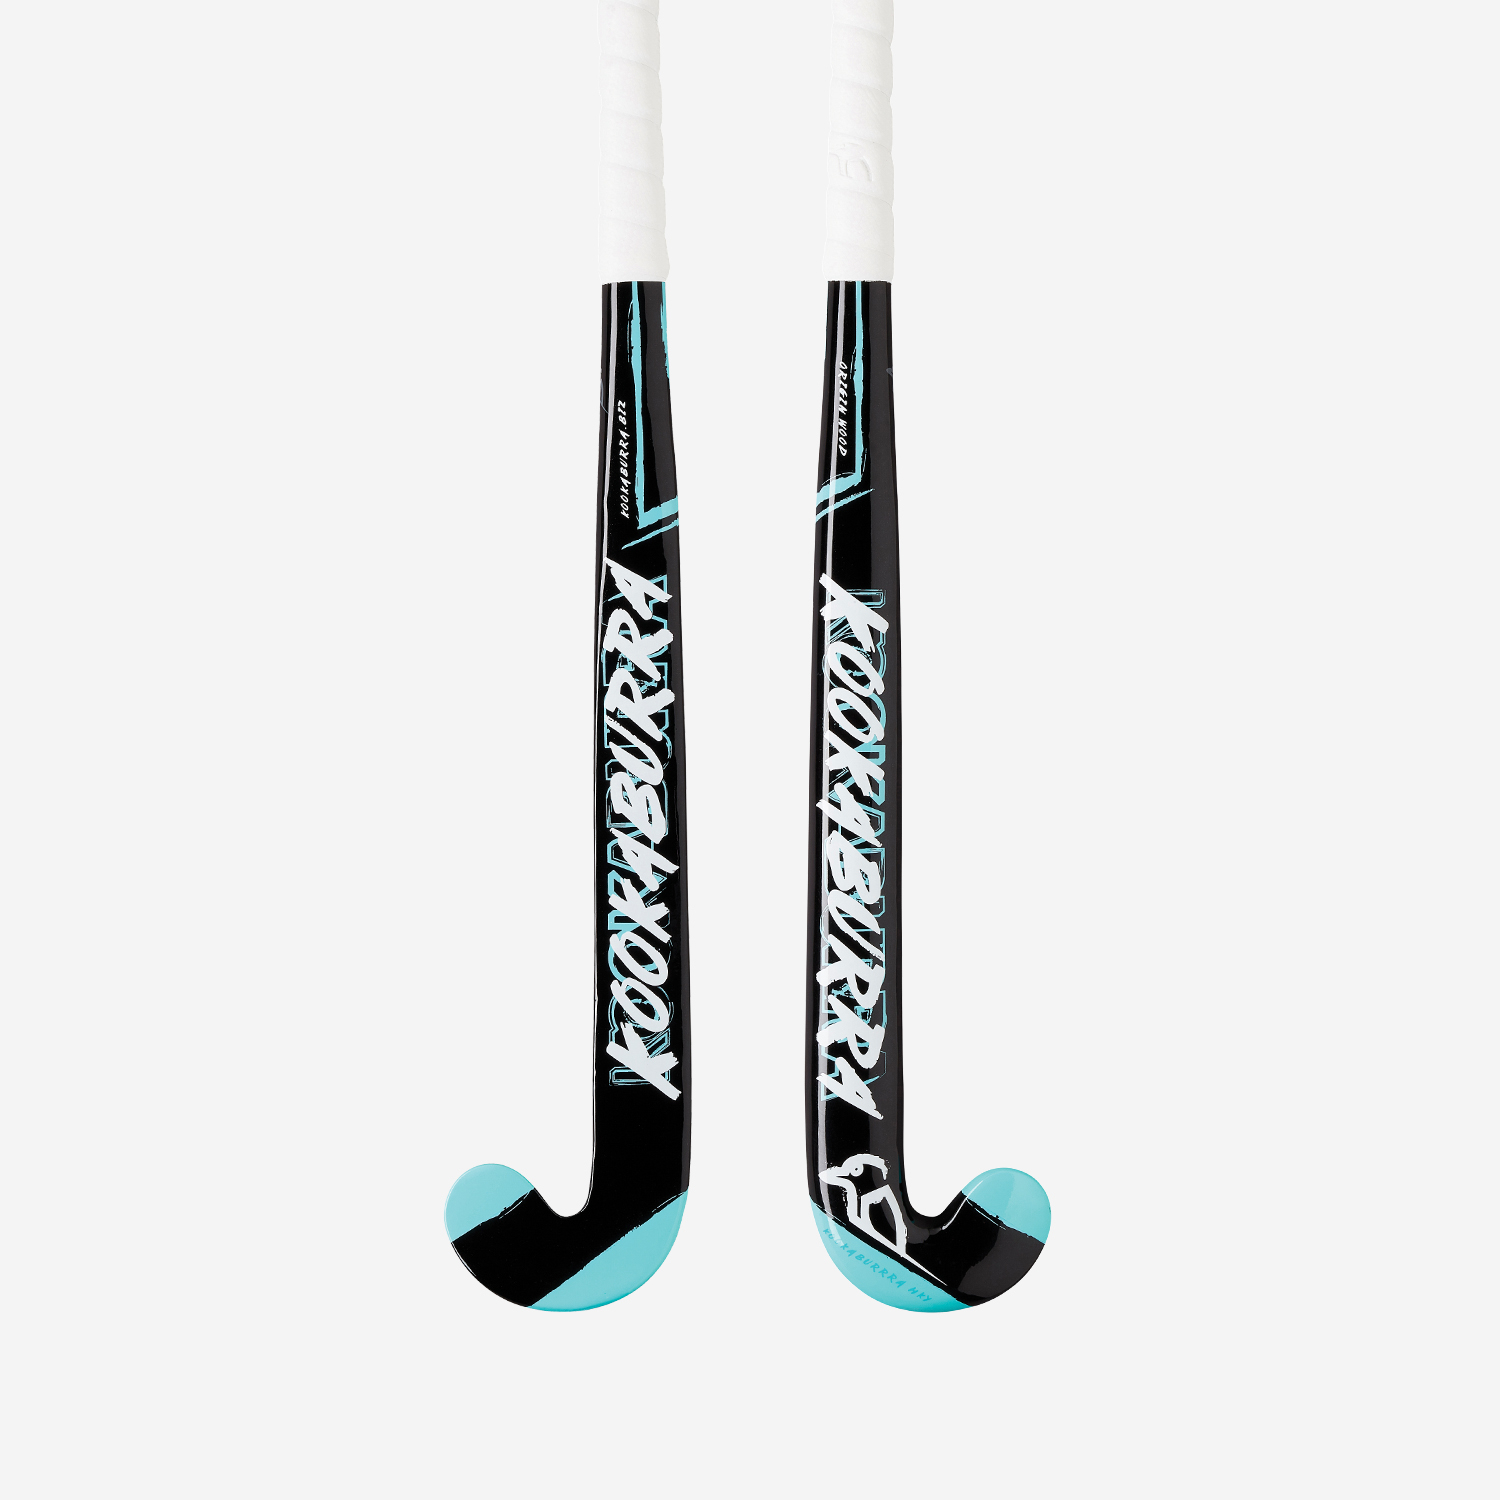 Origin Wood Hockey Stick